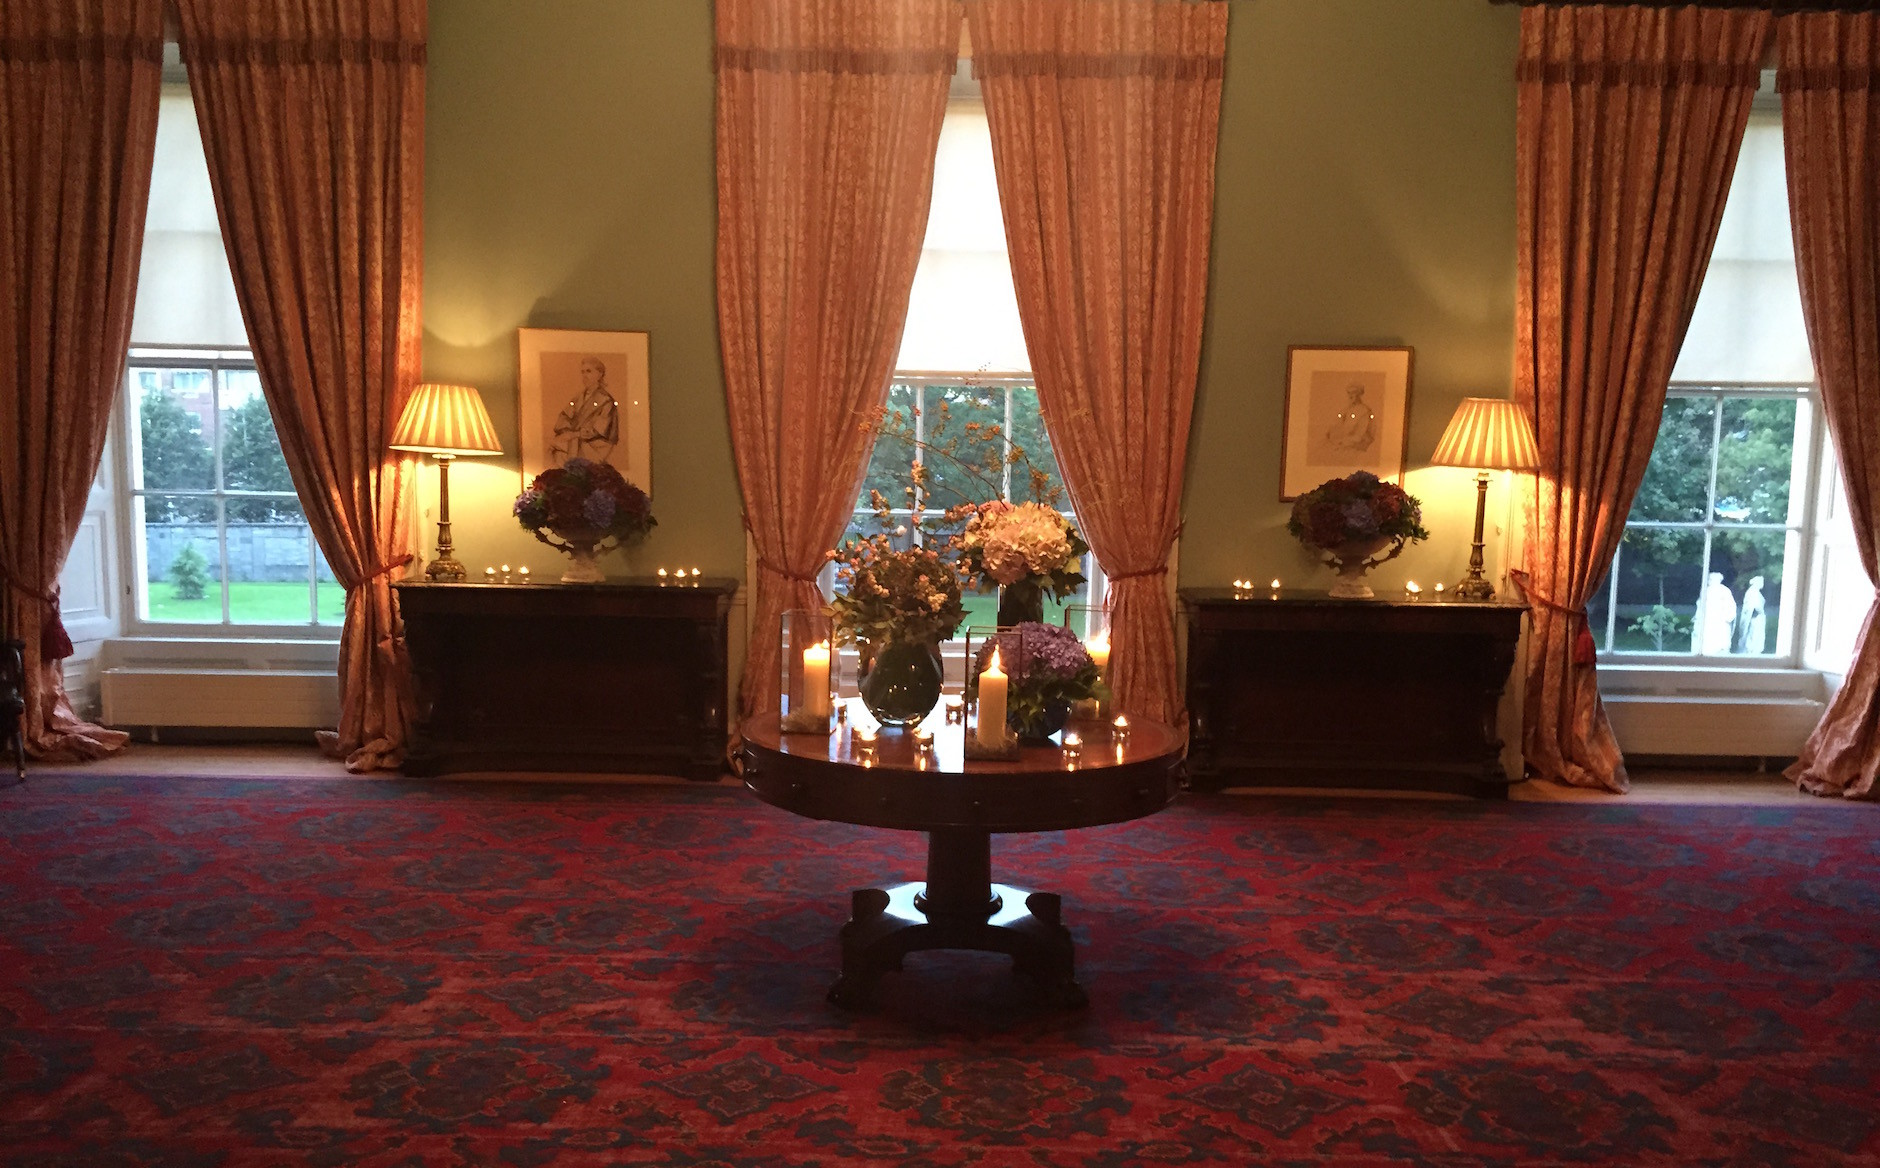 Lighting sets the theme of the event